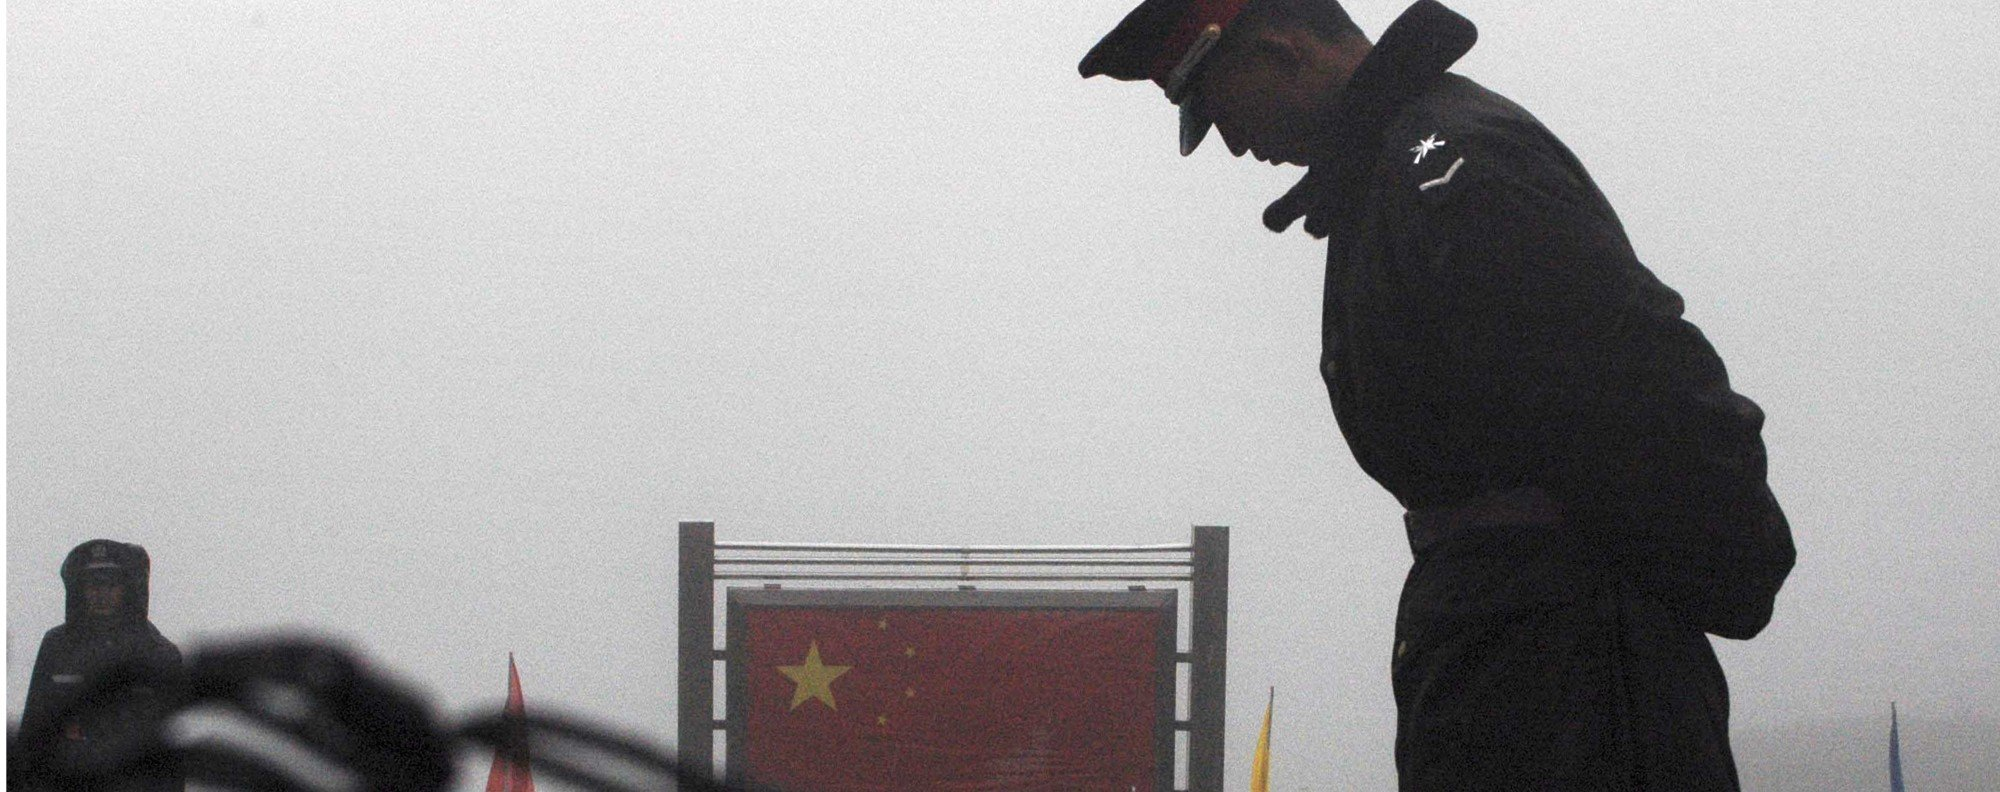 A Chinese soldier at the India border.